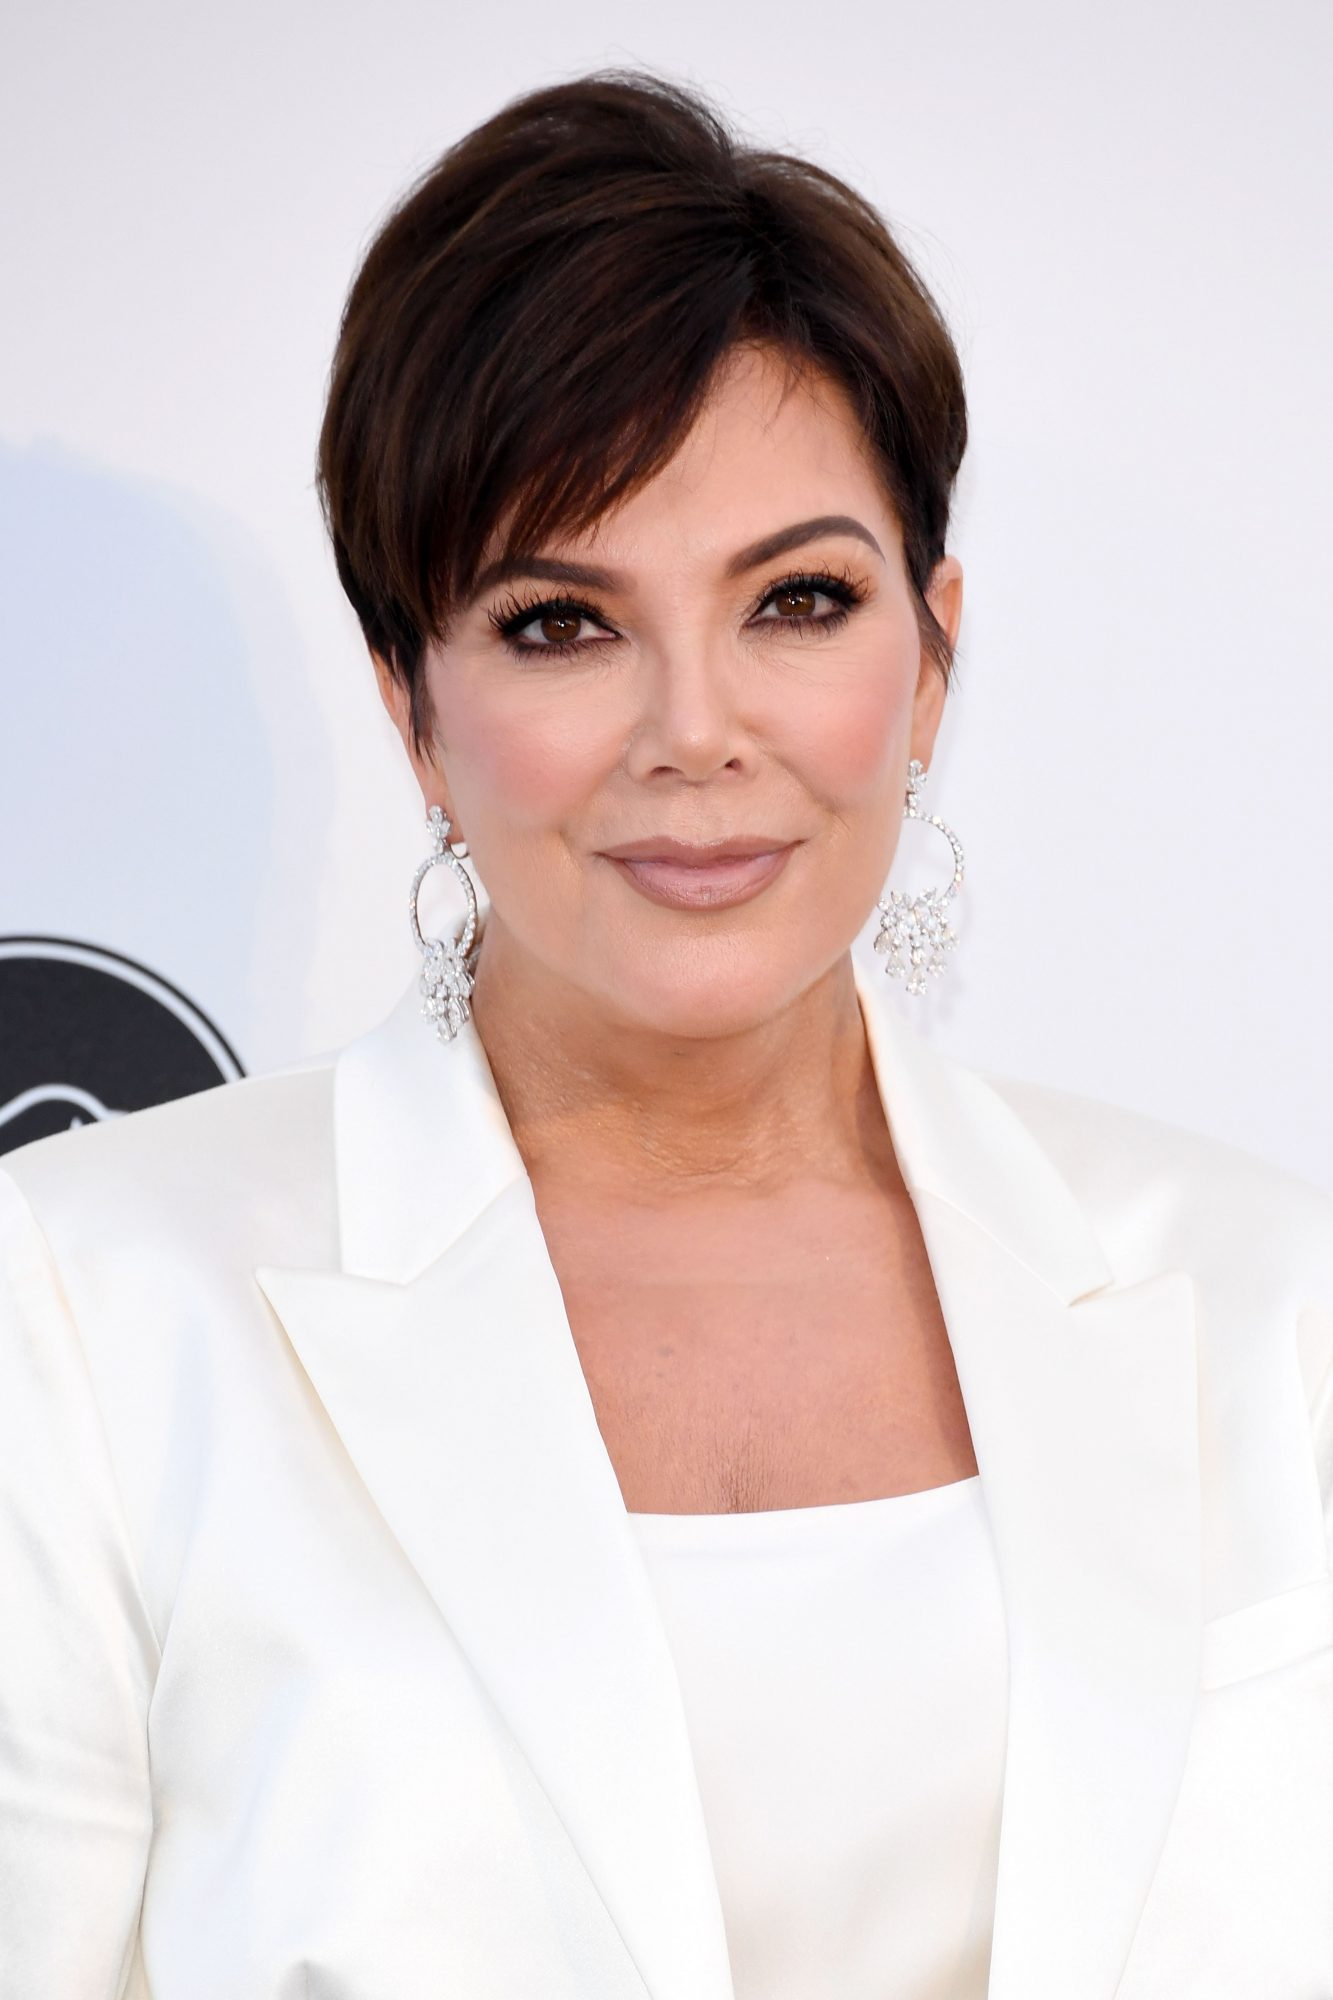 Kris Jenner Has a Full-On Perm in This <em>Dynasty</em>-Themed Photoshoot